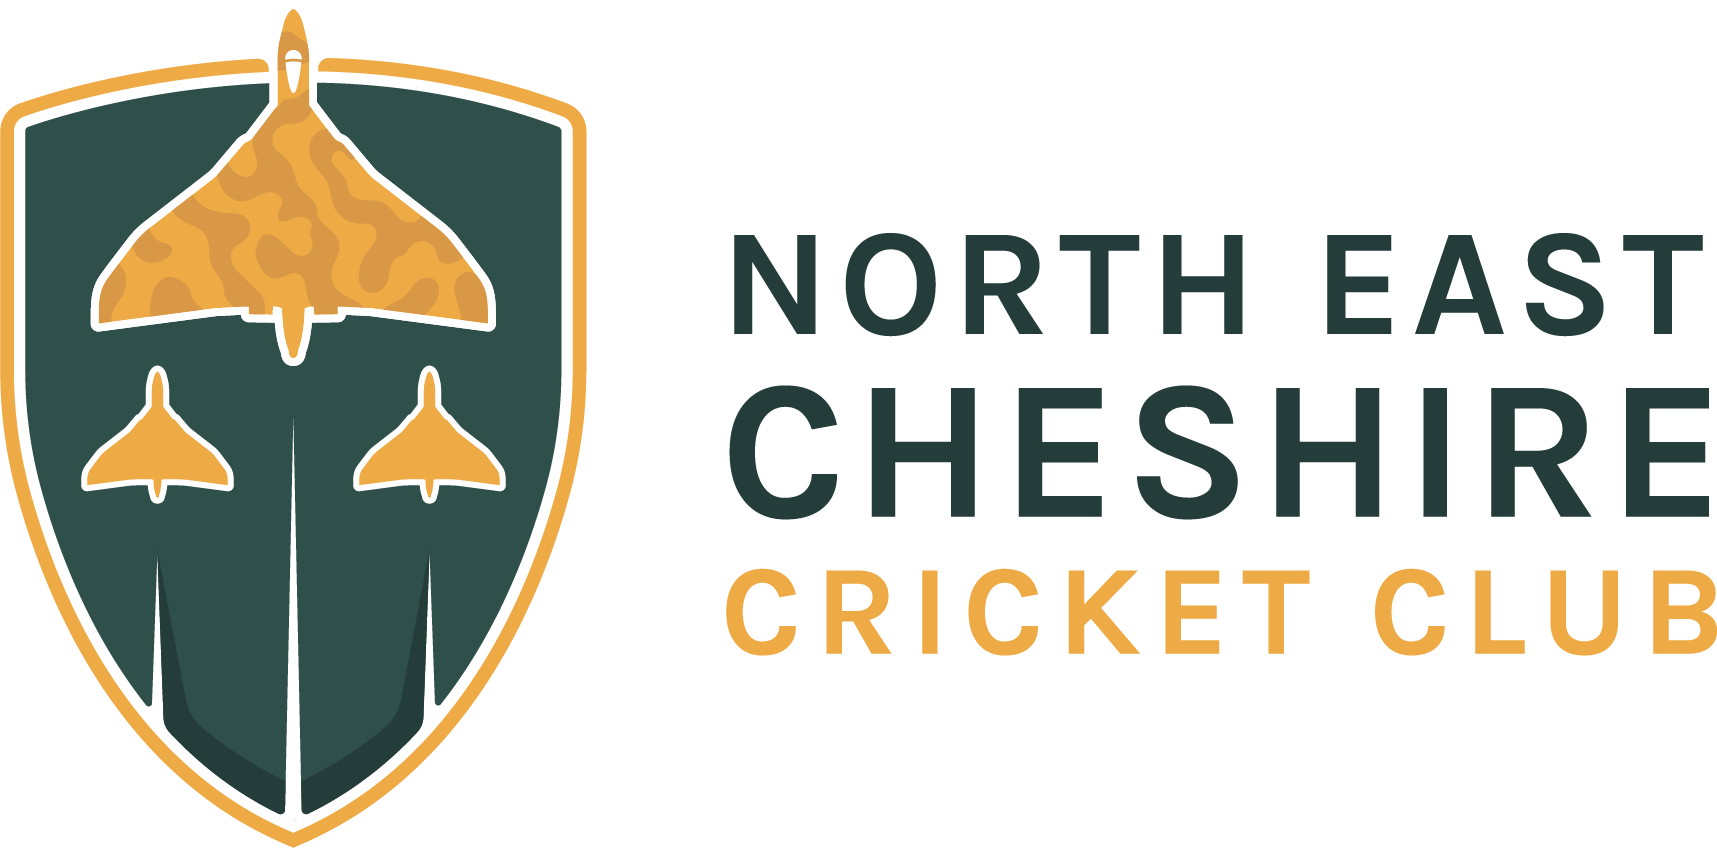 North East Cheshire Cricket Club